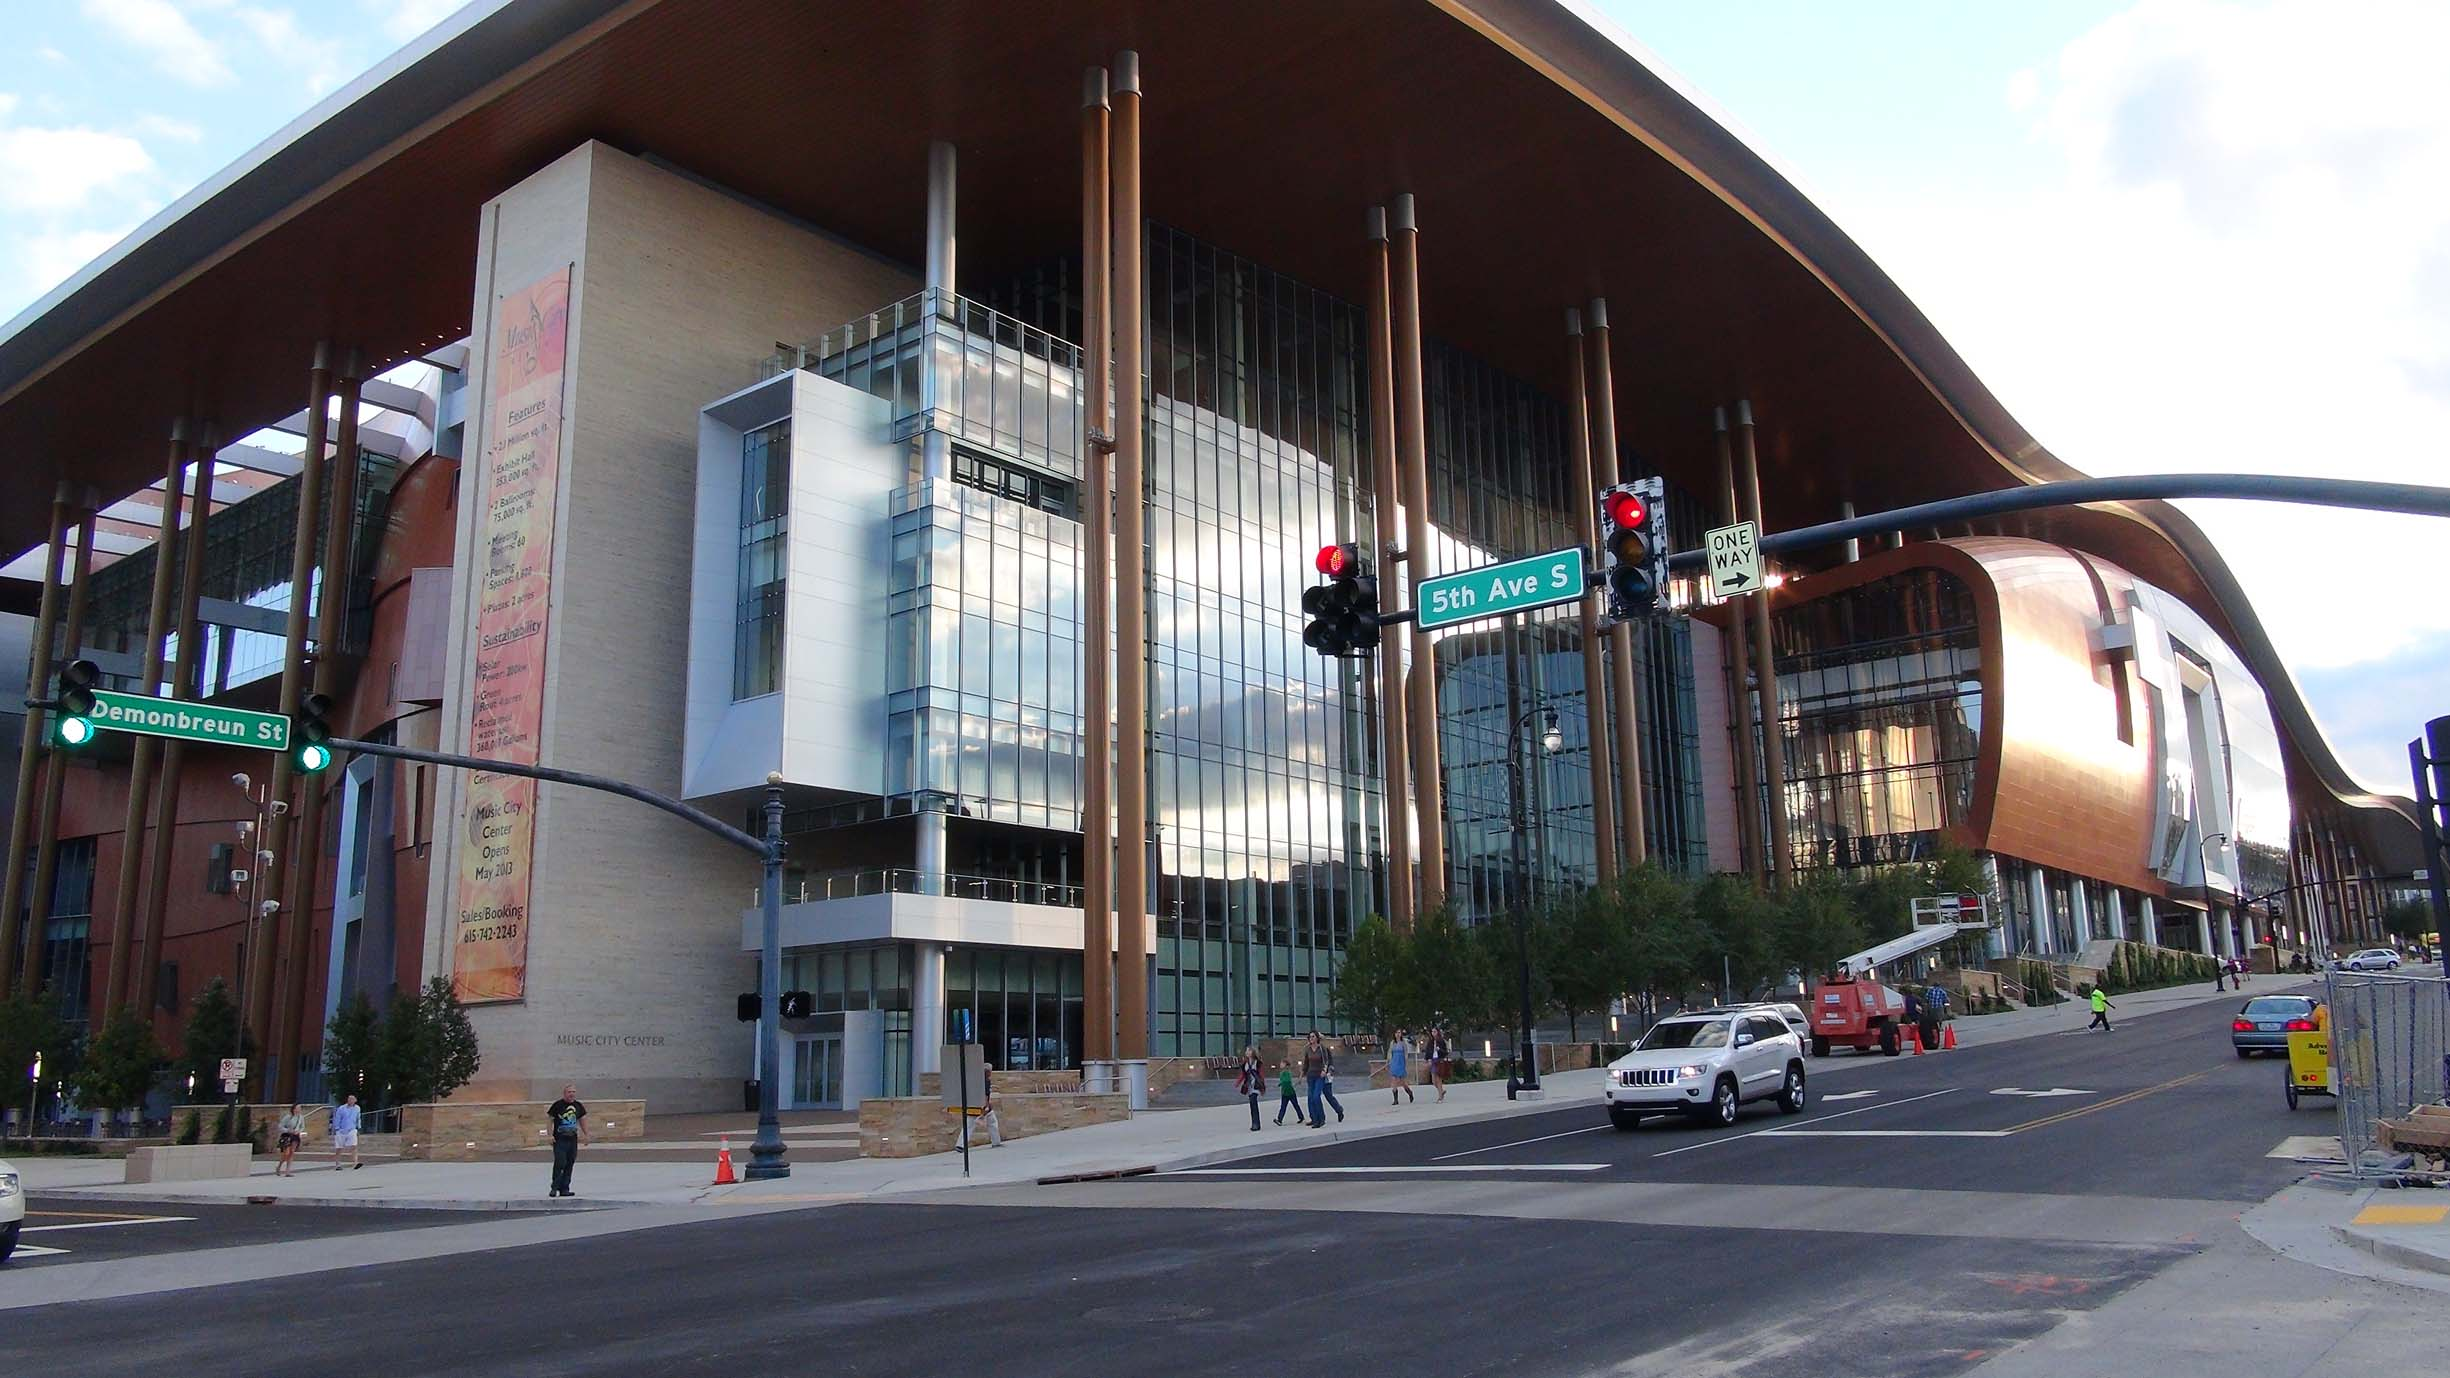 This is Music City Center Sept. 21, 2013. (Photo by Lee Roberts)